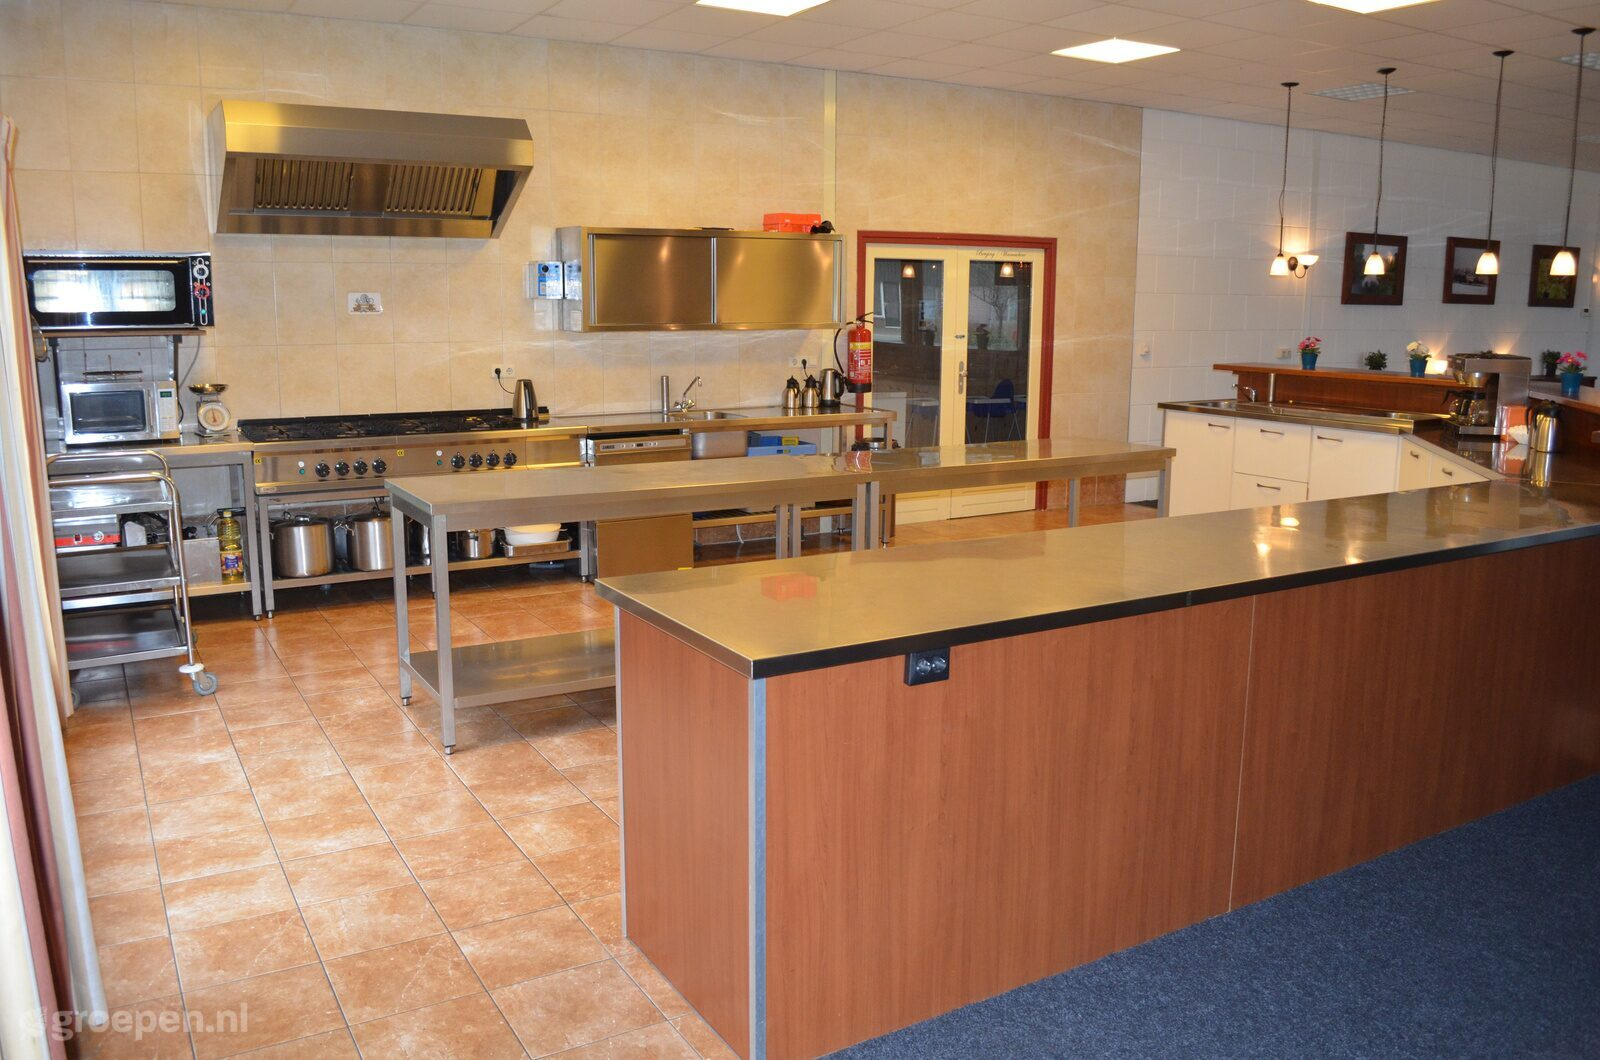 Group accommodation Rouveen